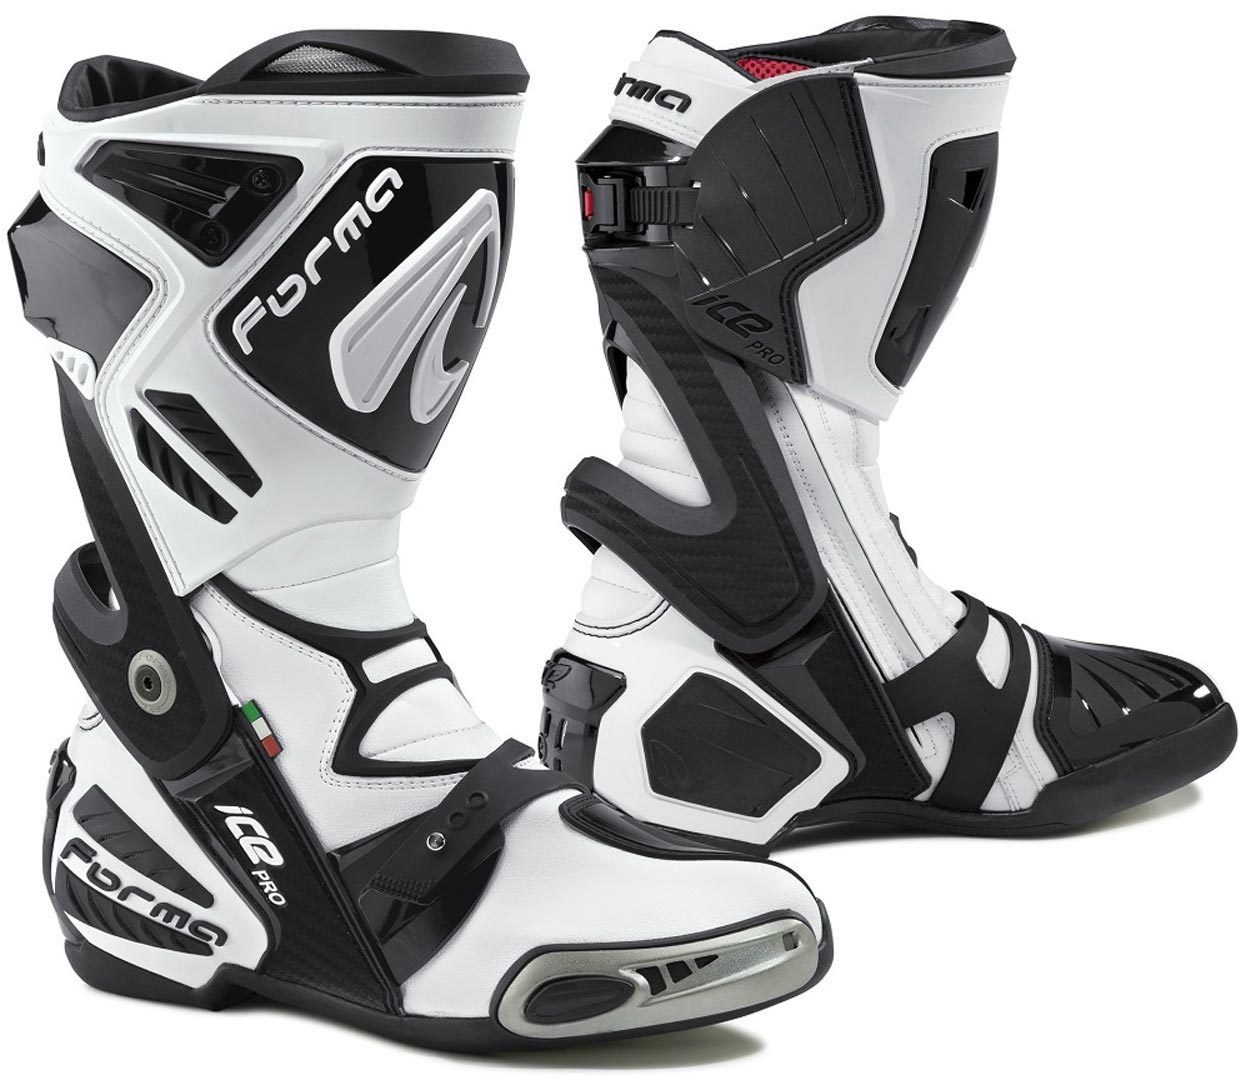 Forma ice pro white, motorlaarzen, OUTLET